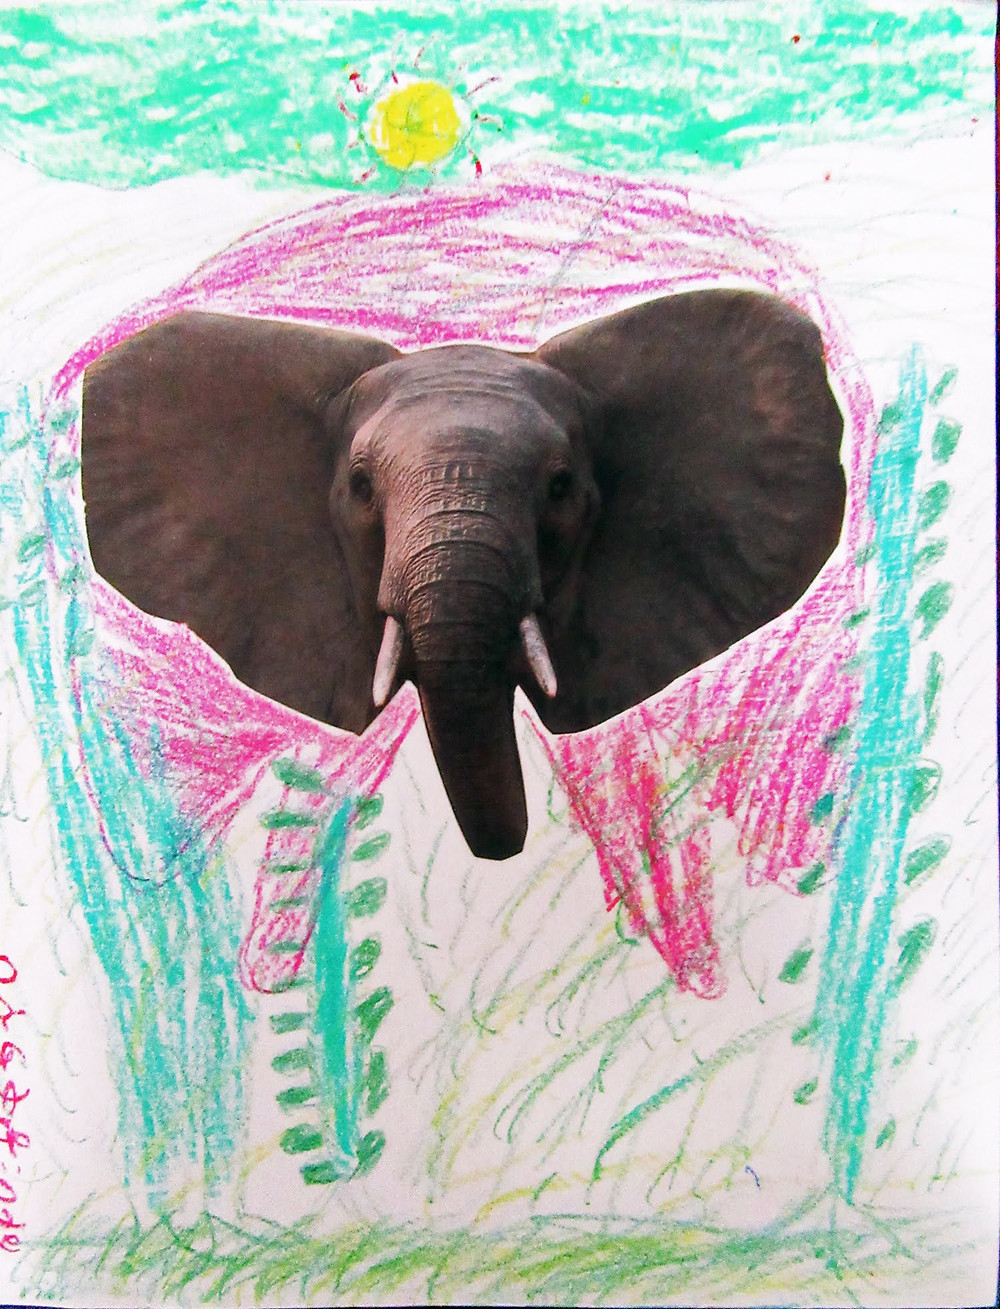 Artist continued the drawing by continuing elephants body and giving it a habitat.